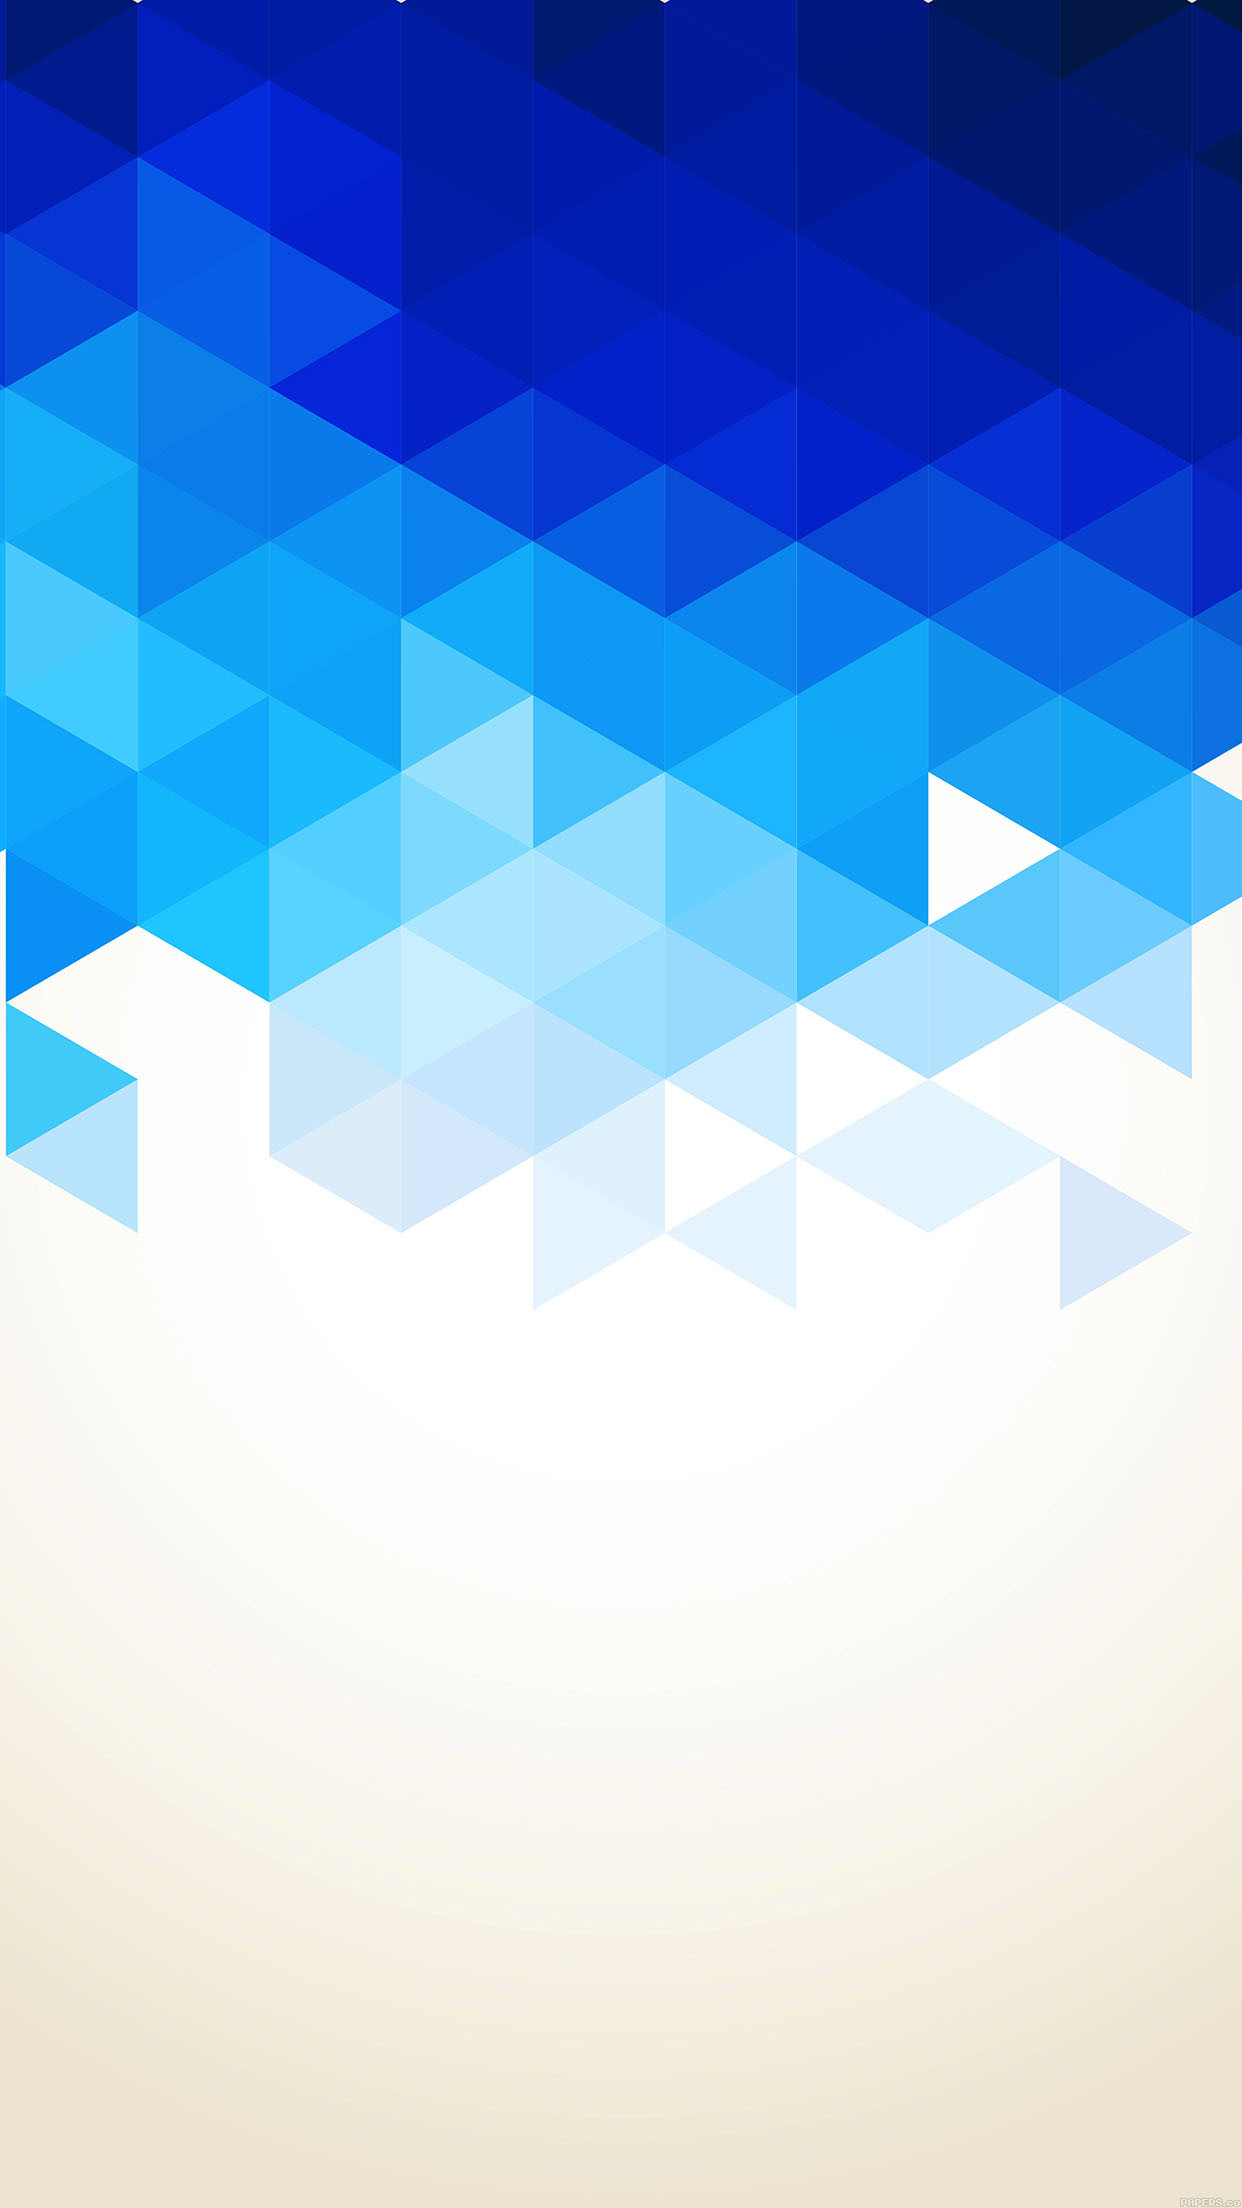 Images About Triangle On Pinterest Iphone Wallpaper Pattern Blue Cool  Beautiful Abstract Hd Engineering Gorgeous Boys